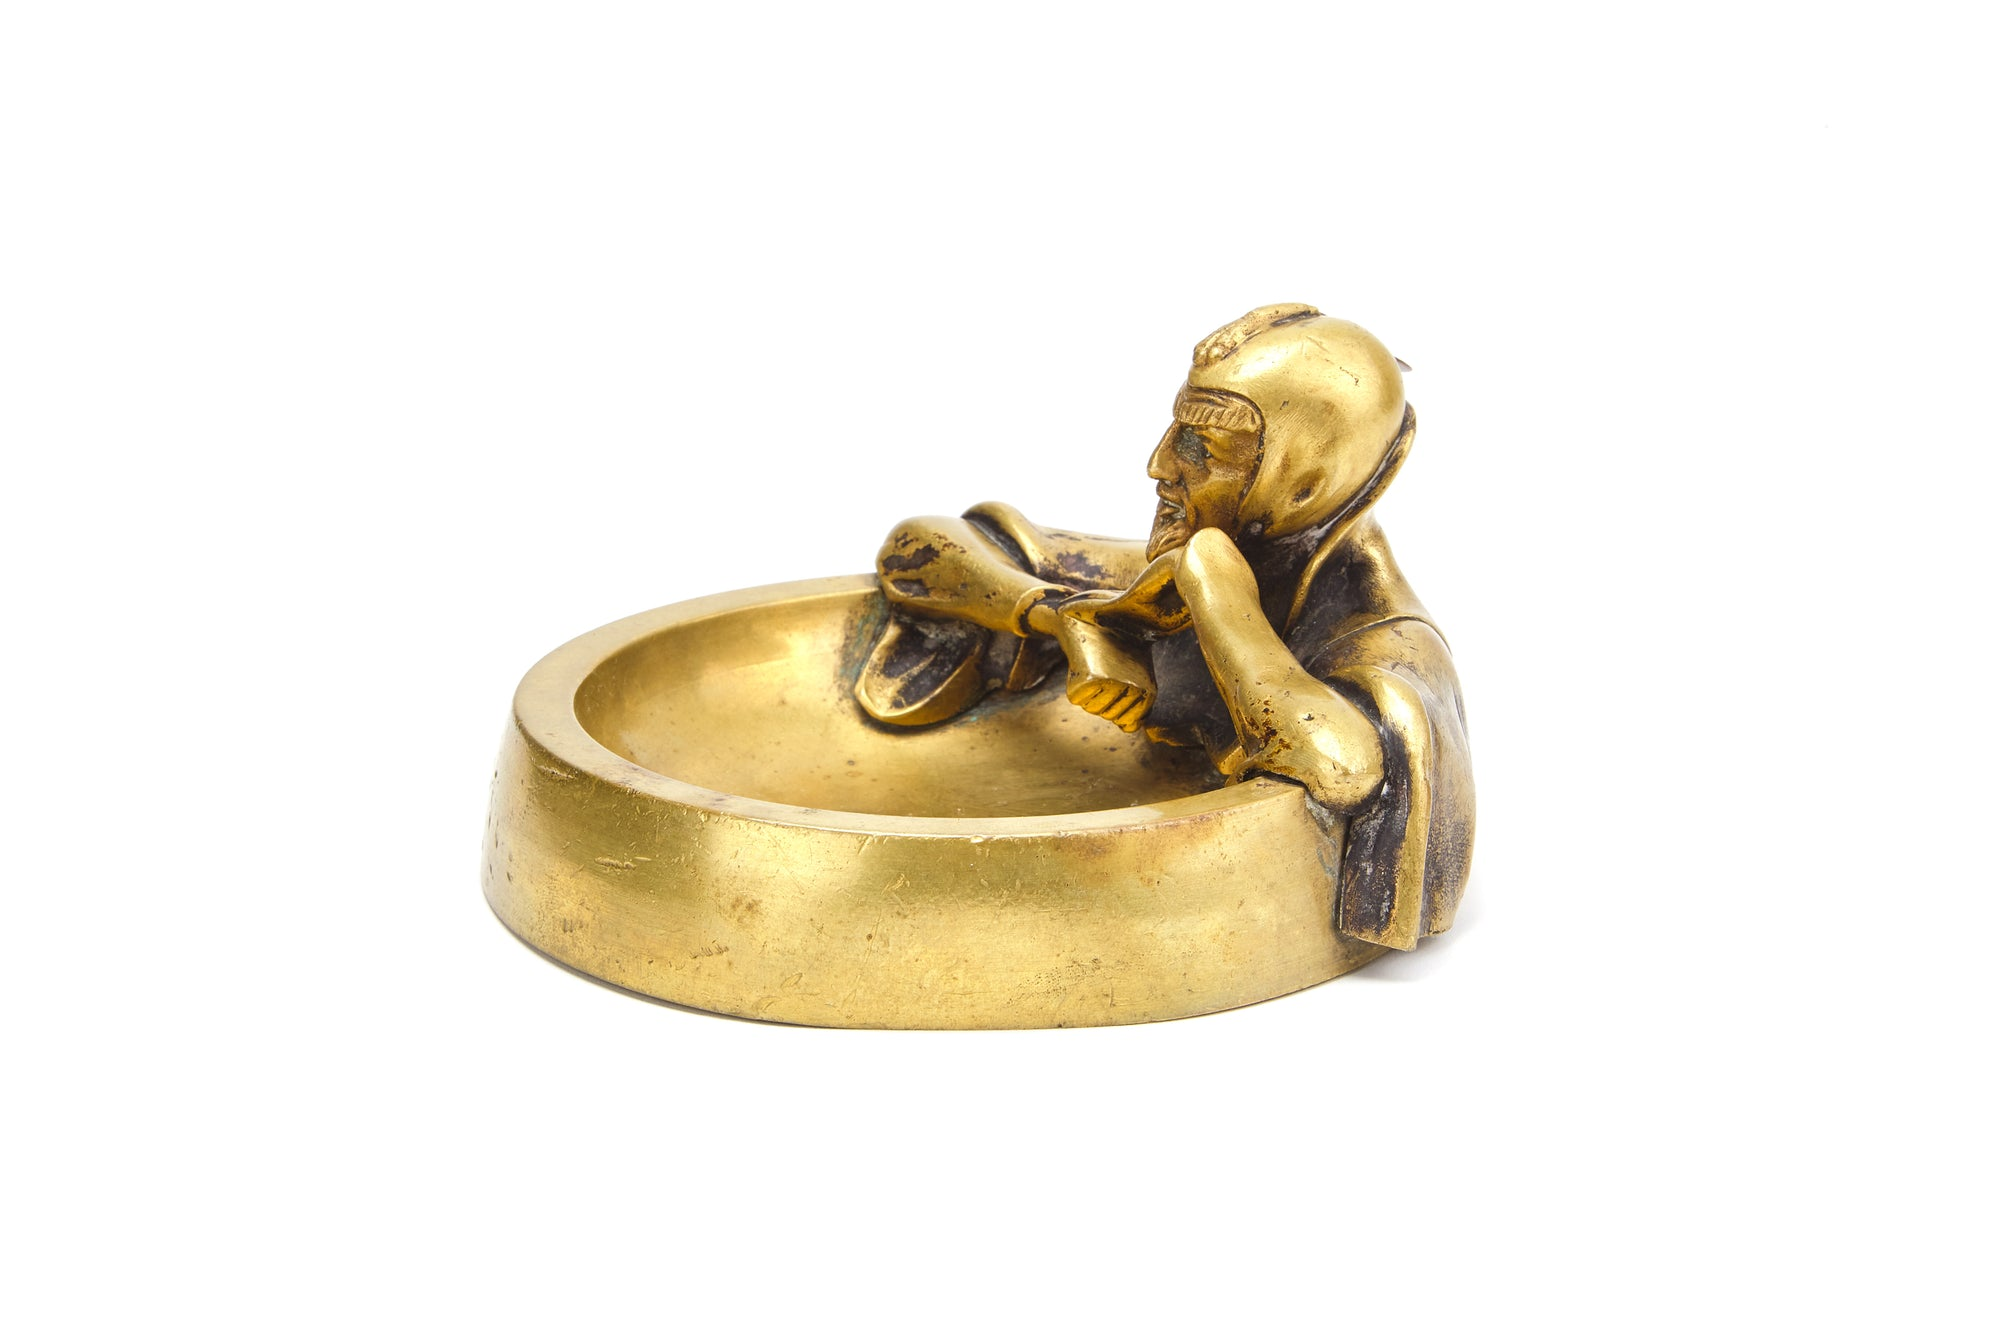 Austrian Brass Ashtray with Mephistopheles